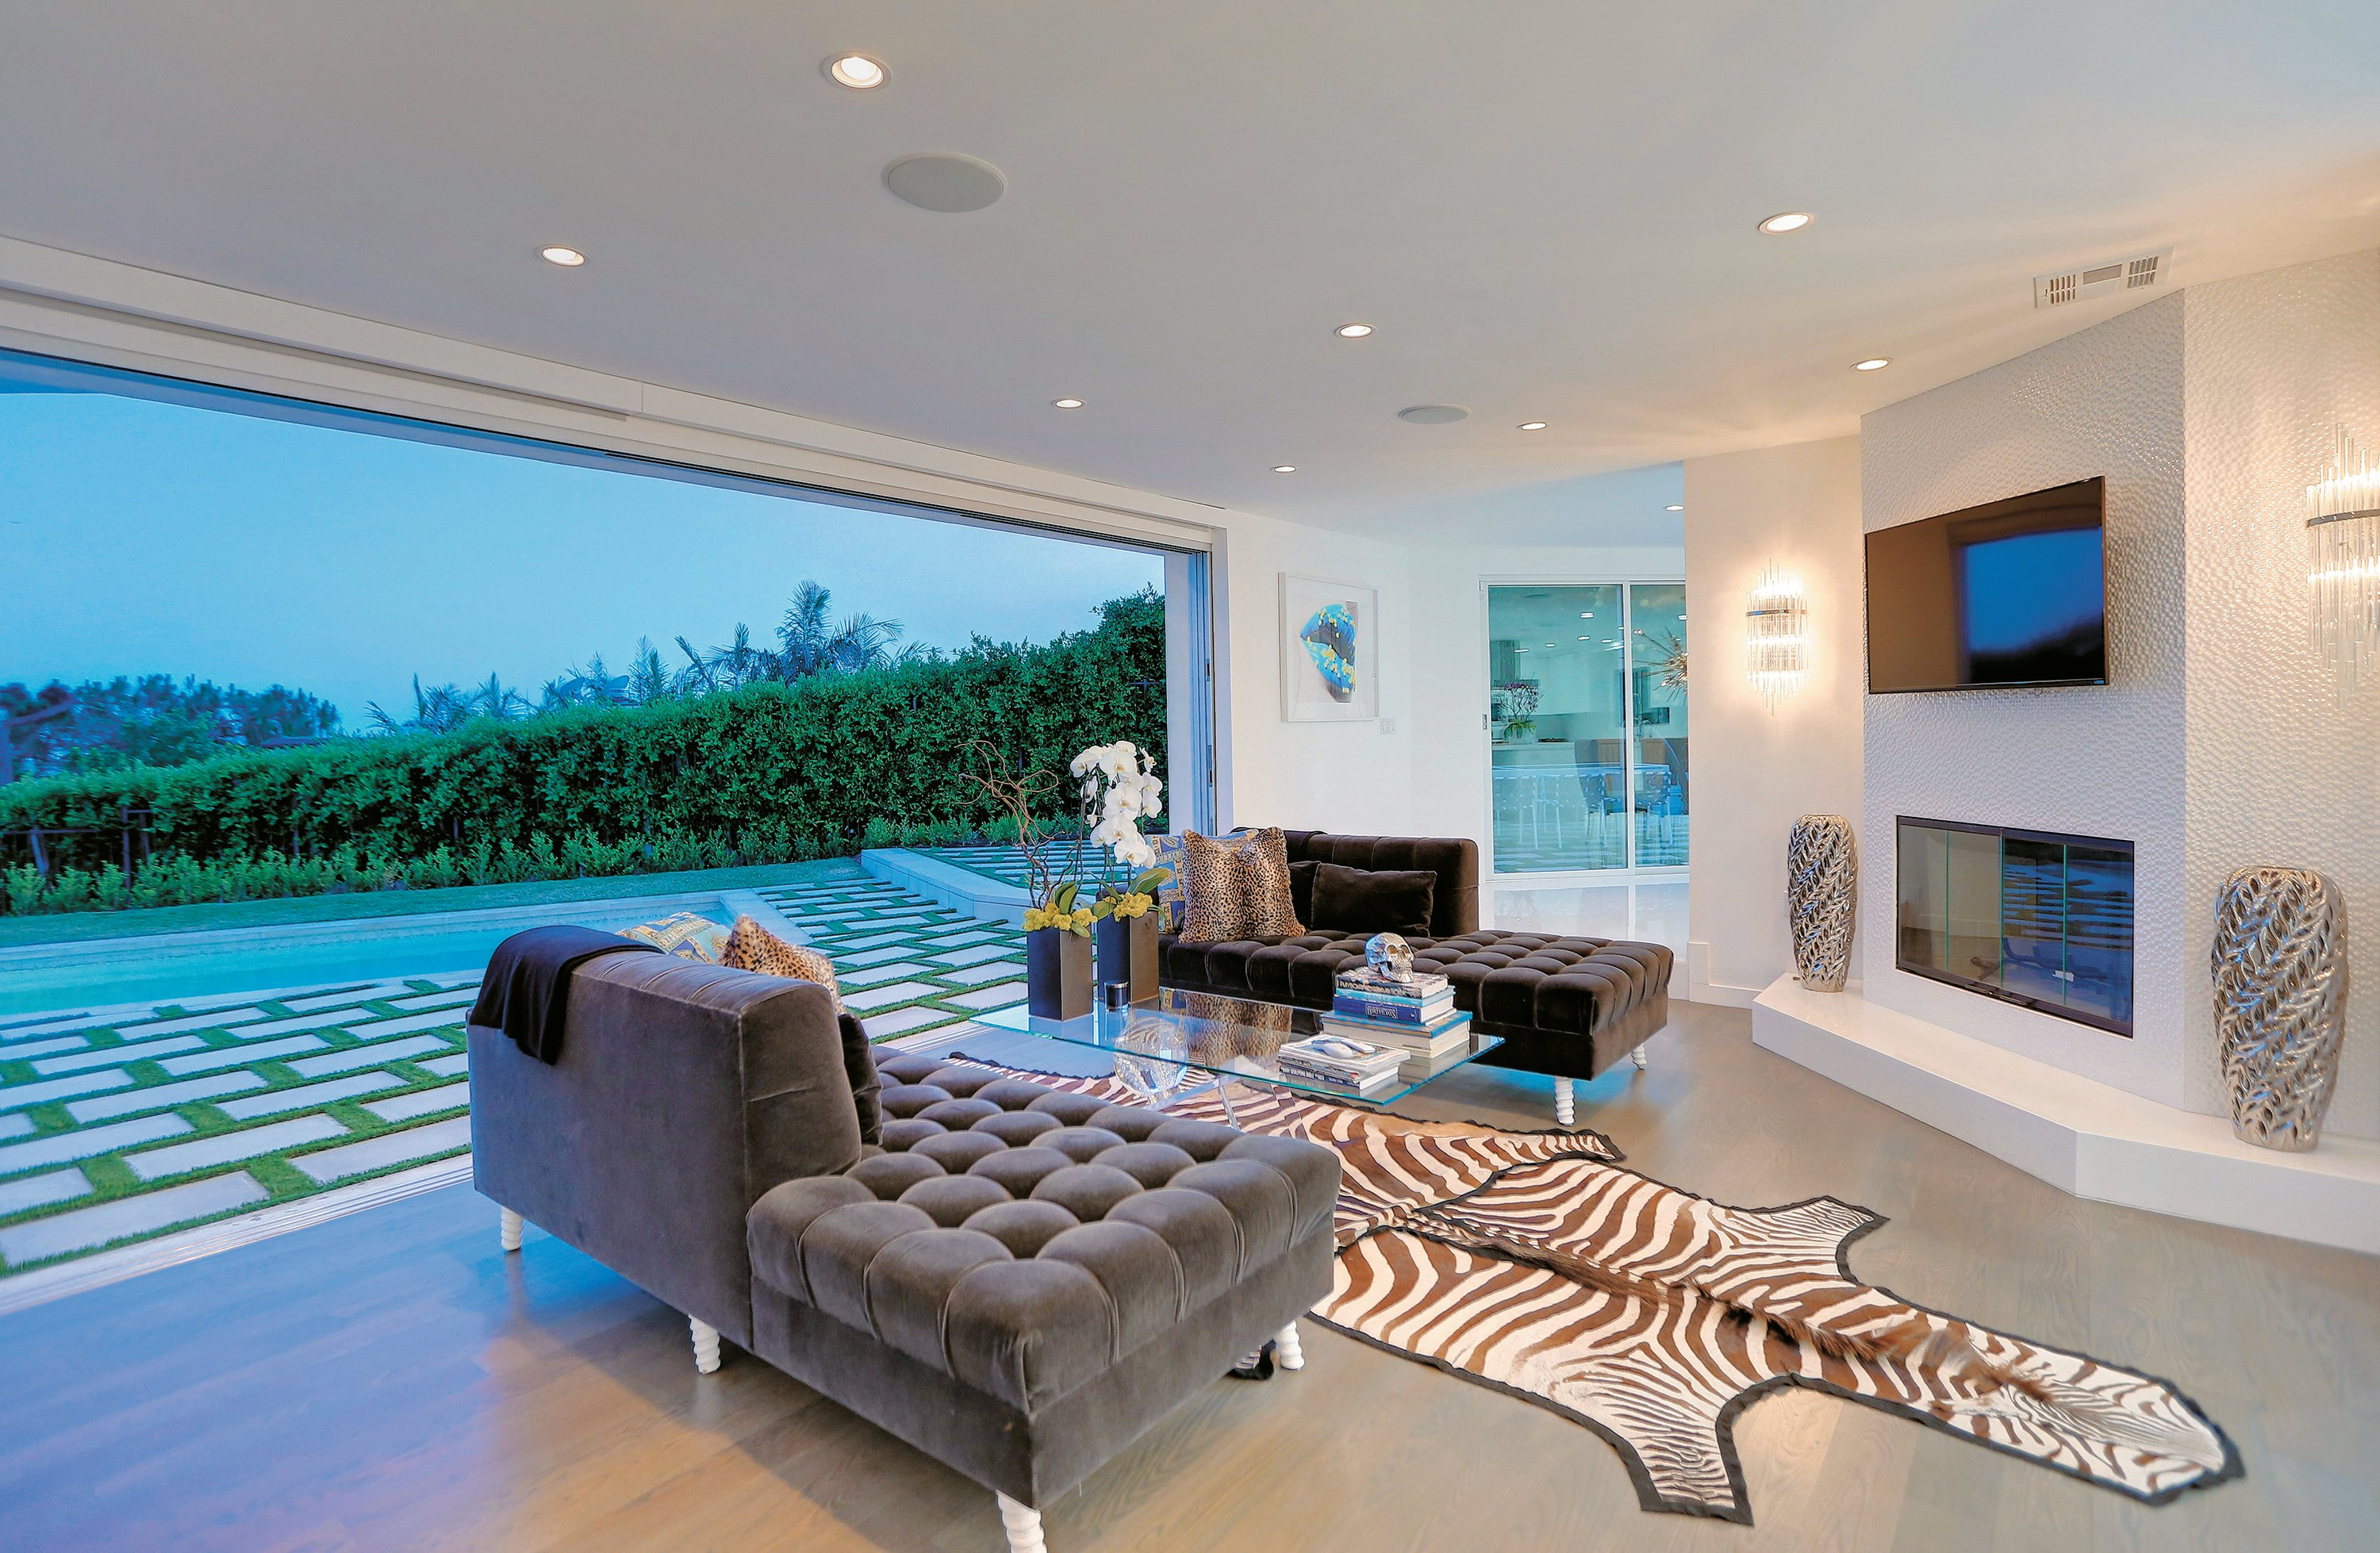 The living room with its panoramic view of Los Angeles